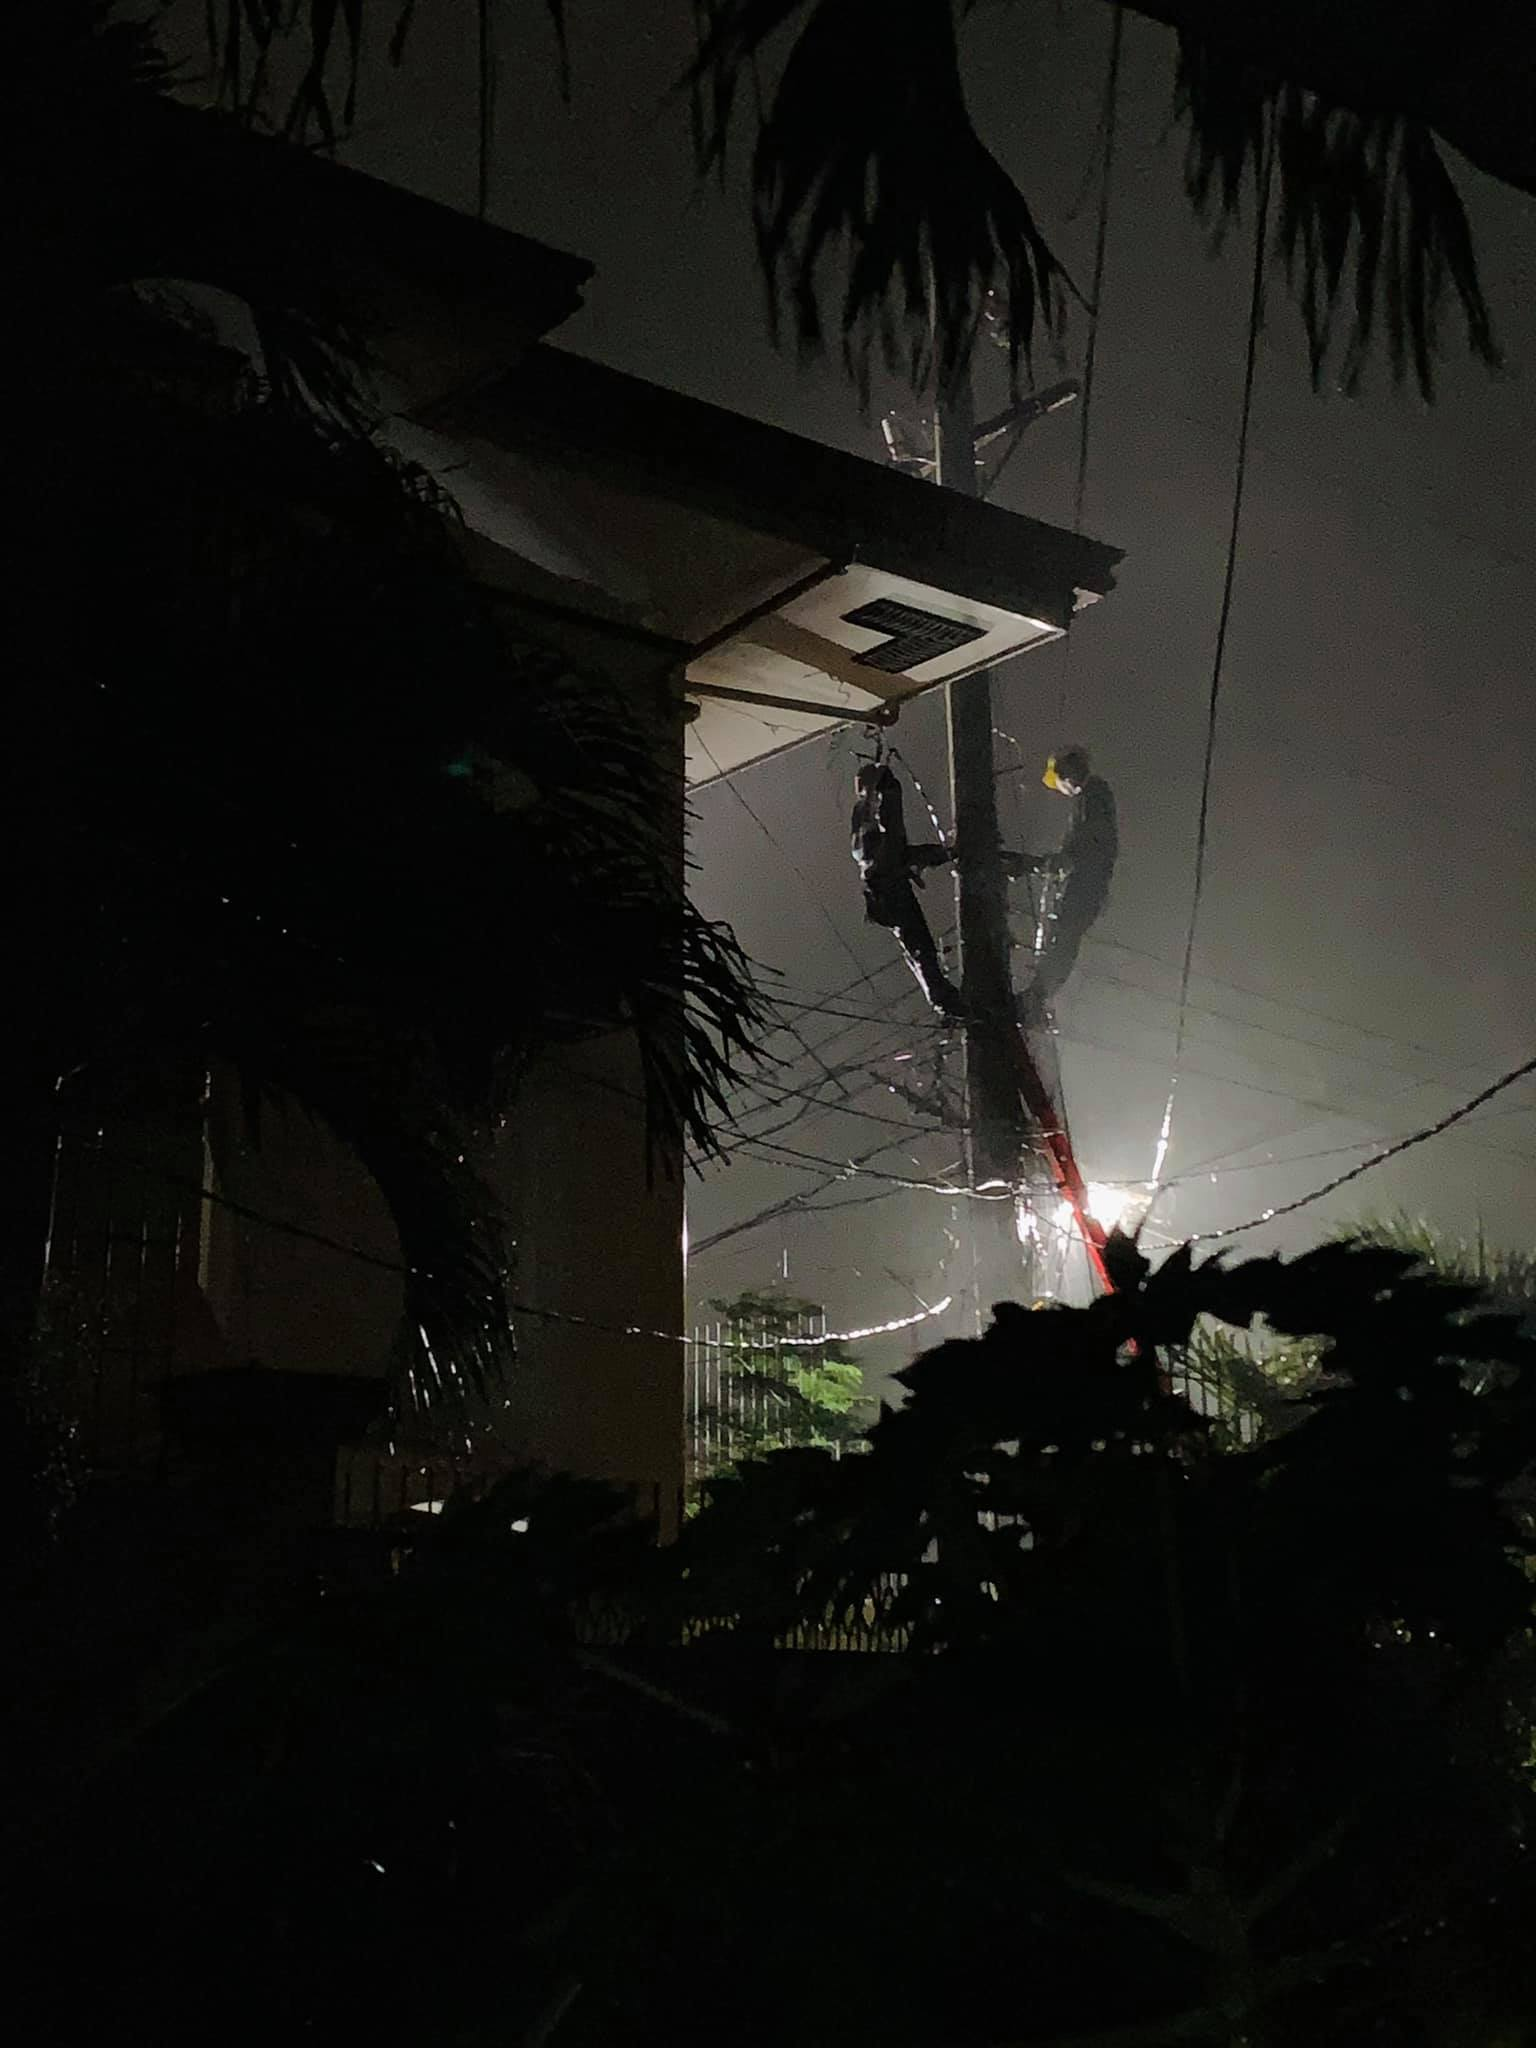 Accidental contact to posts and power lines